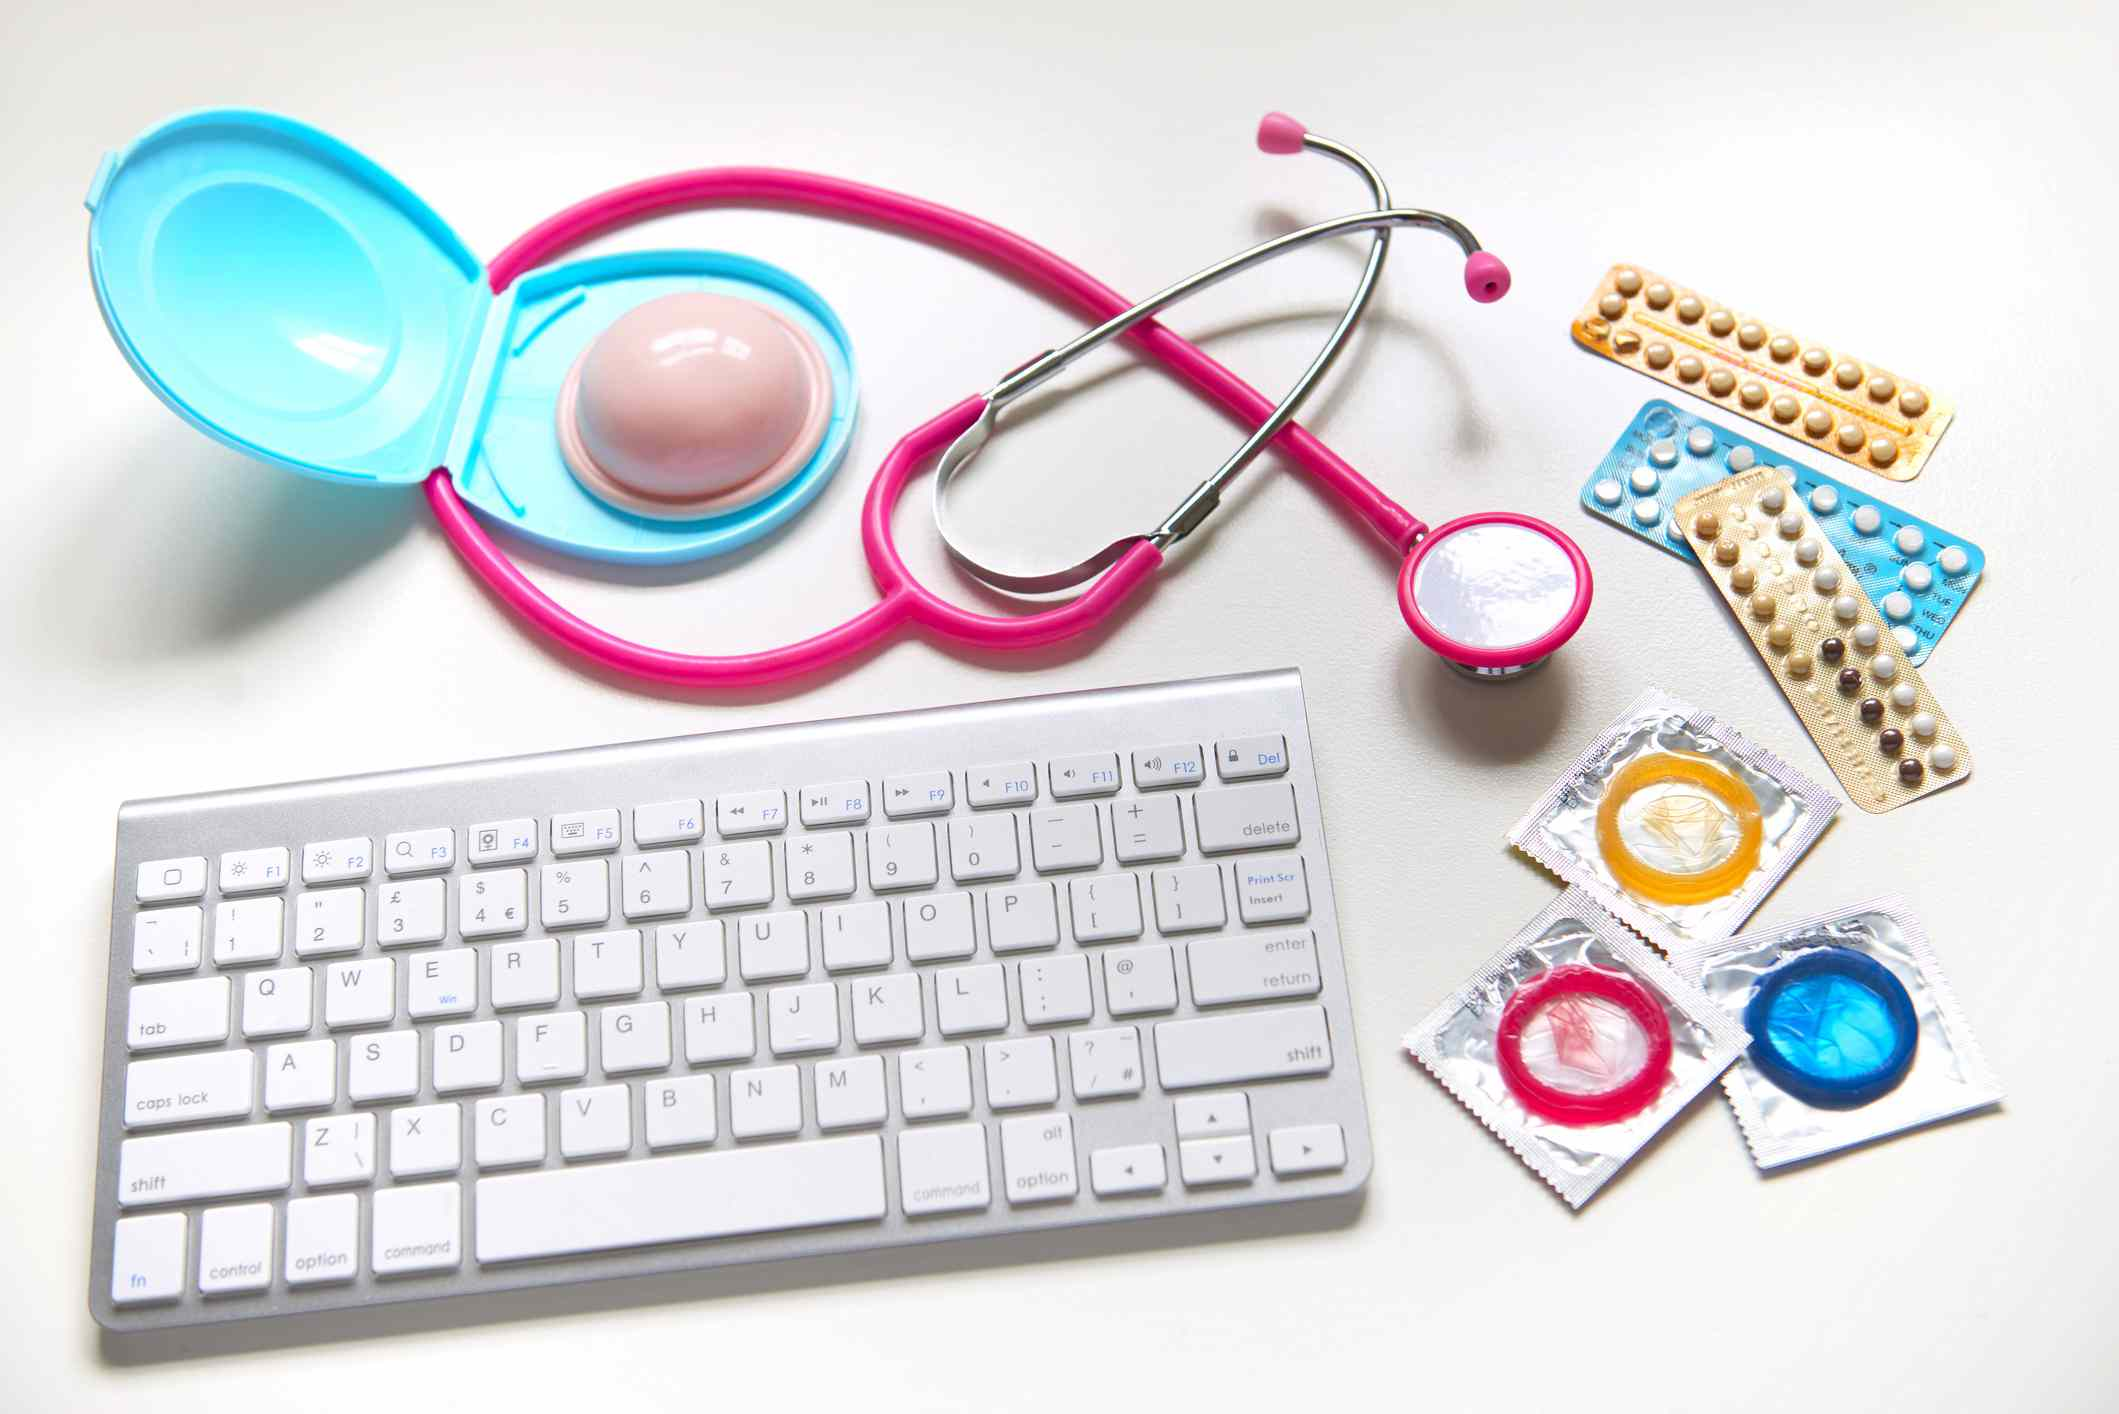 Various forms of birth control, a stethoscope, and a keyboard